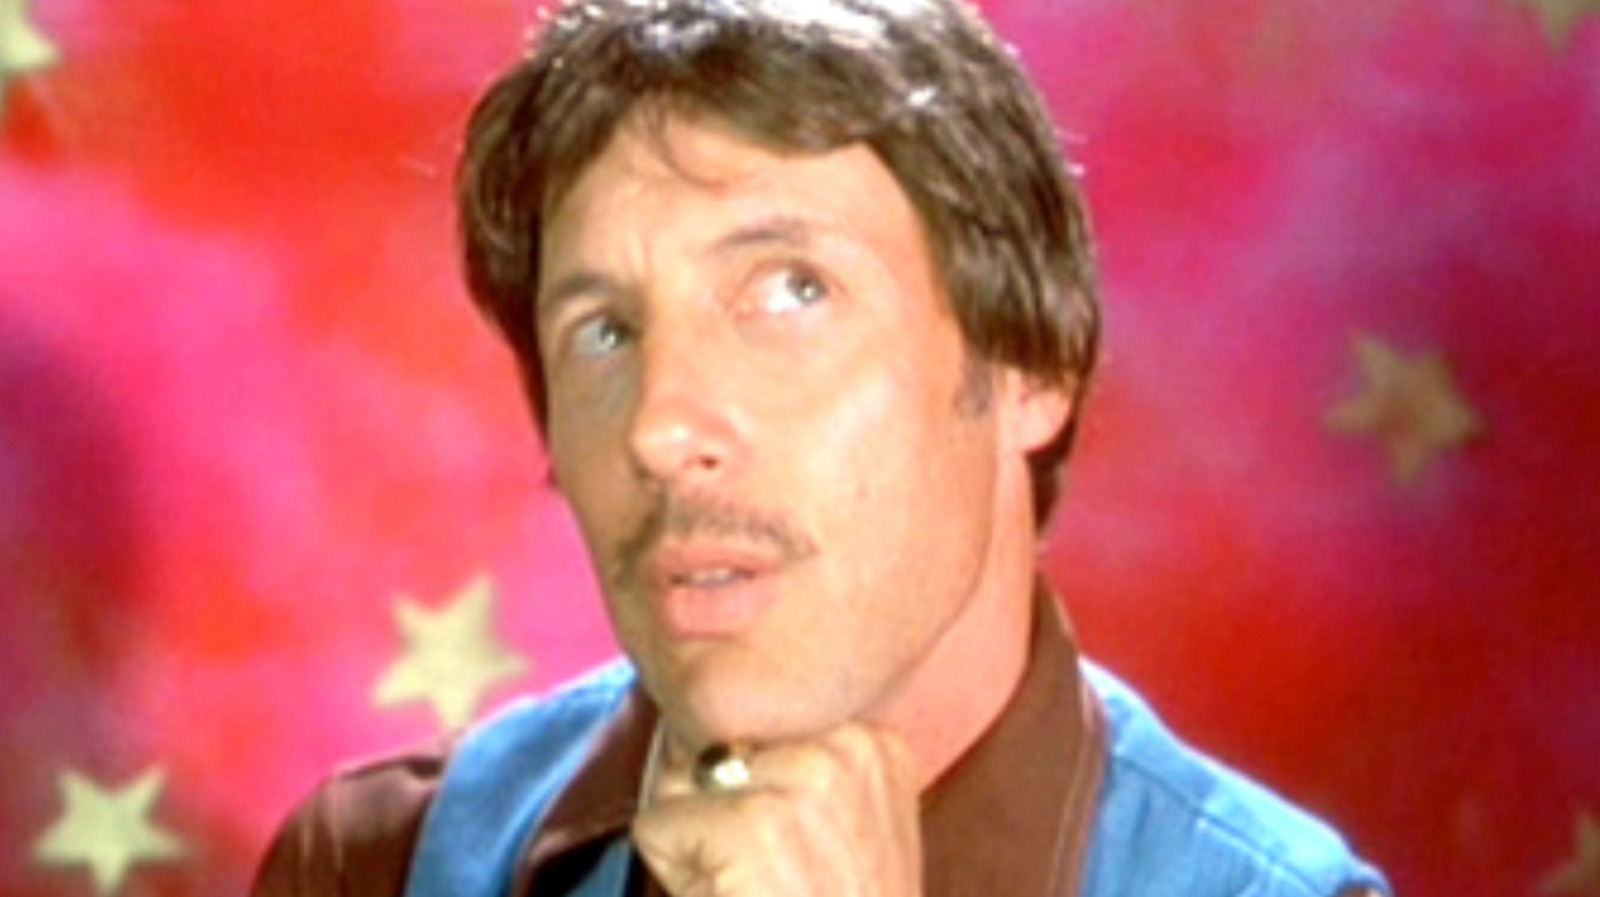 IMAGE(https://img1.looper.com/img/gallery/whatever-happened-to-uncle-rico-from-napoleon-dynamite/l-intro-1614625460.jpg)